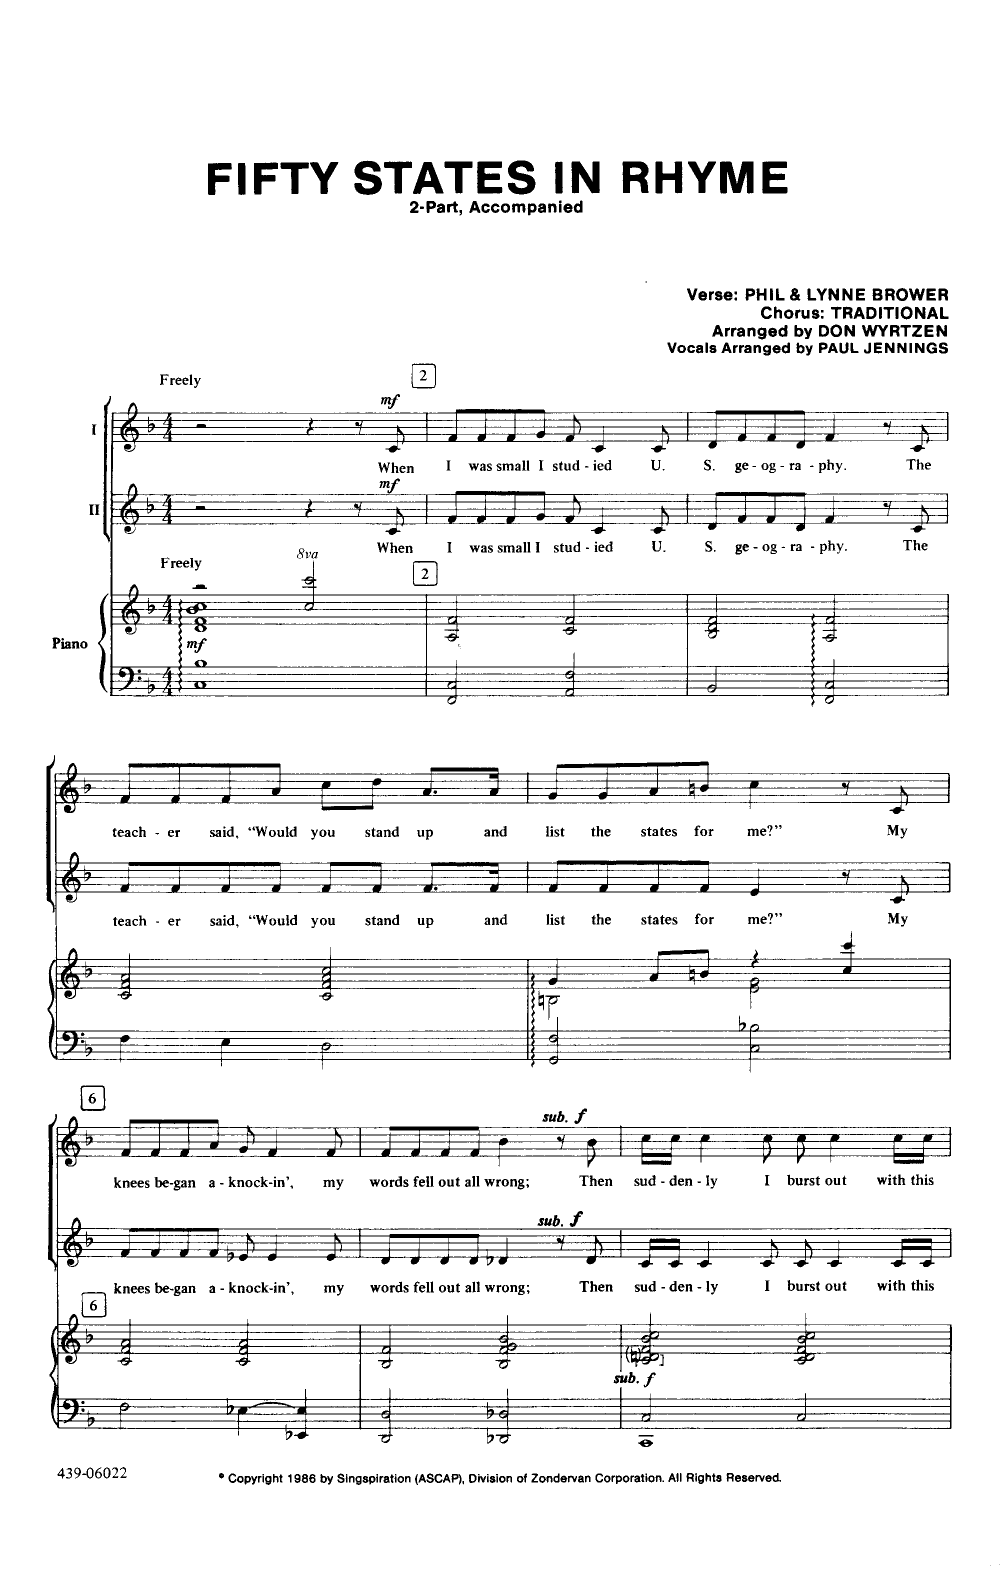 Light Concert Choral Music | Sheet music at JW Pepper